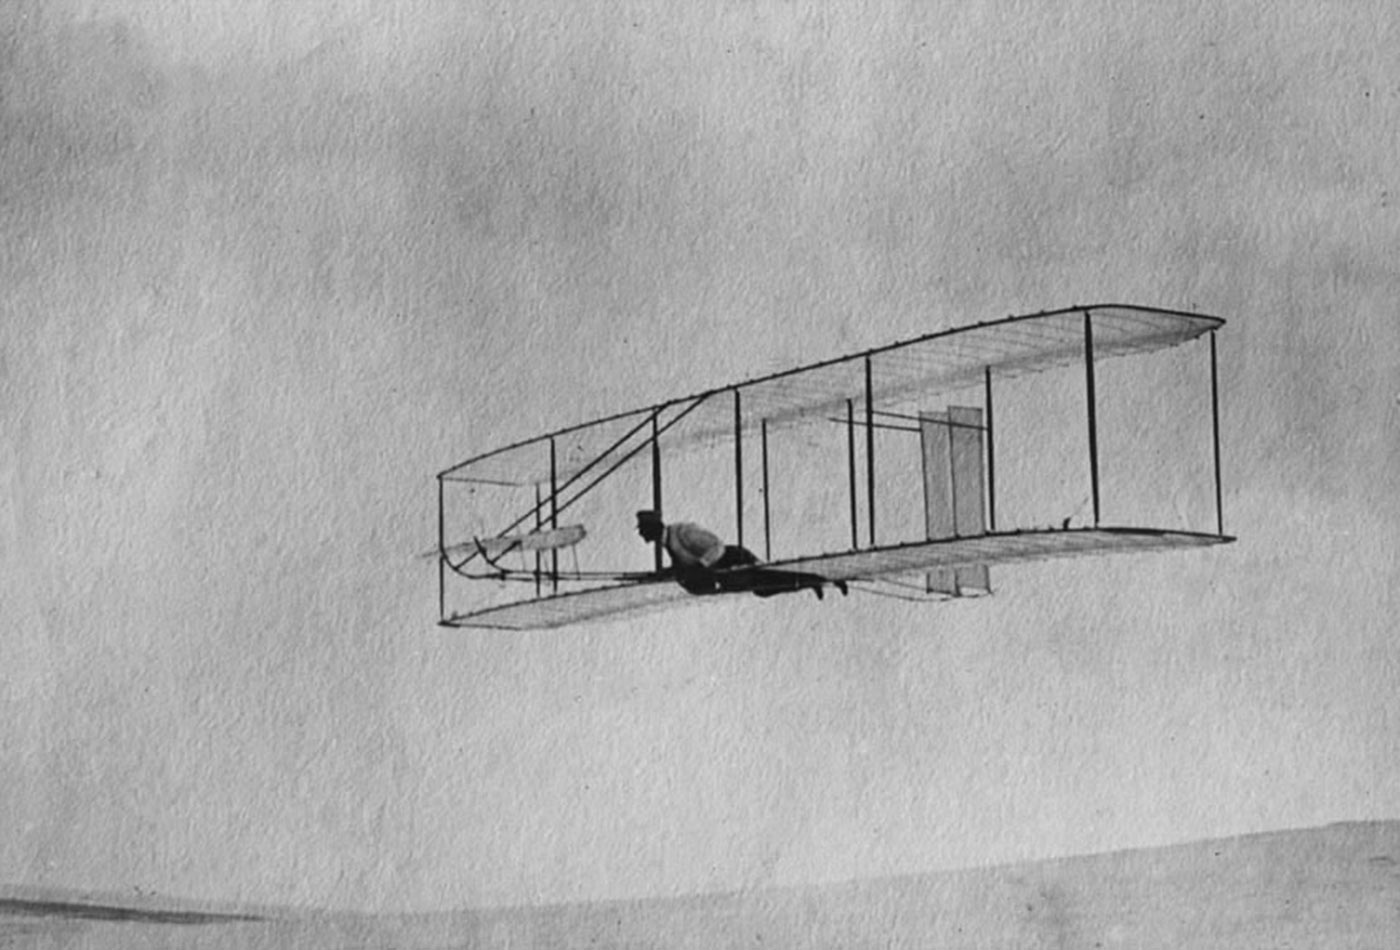 The 1902 Wright Glider on one of its more than 700 flights.